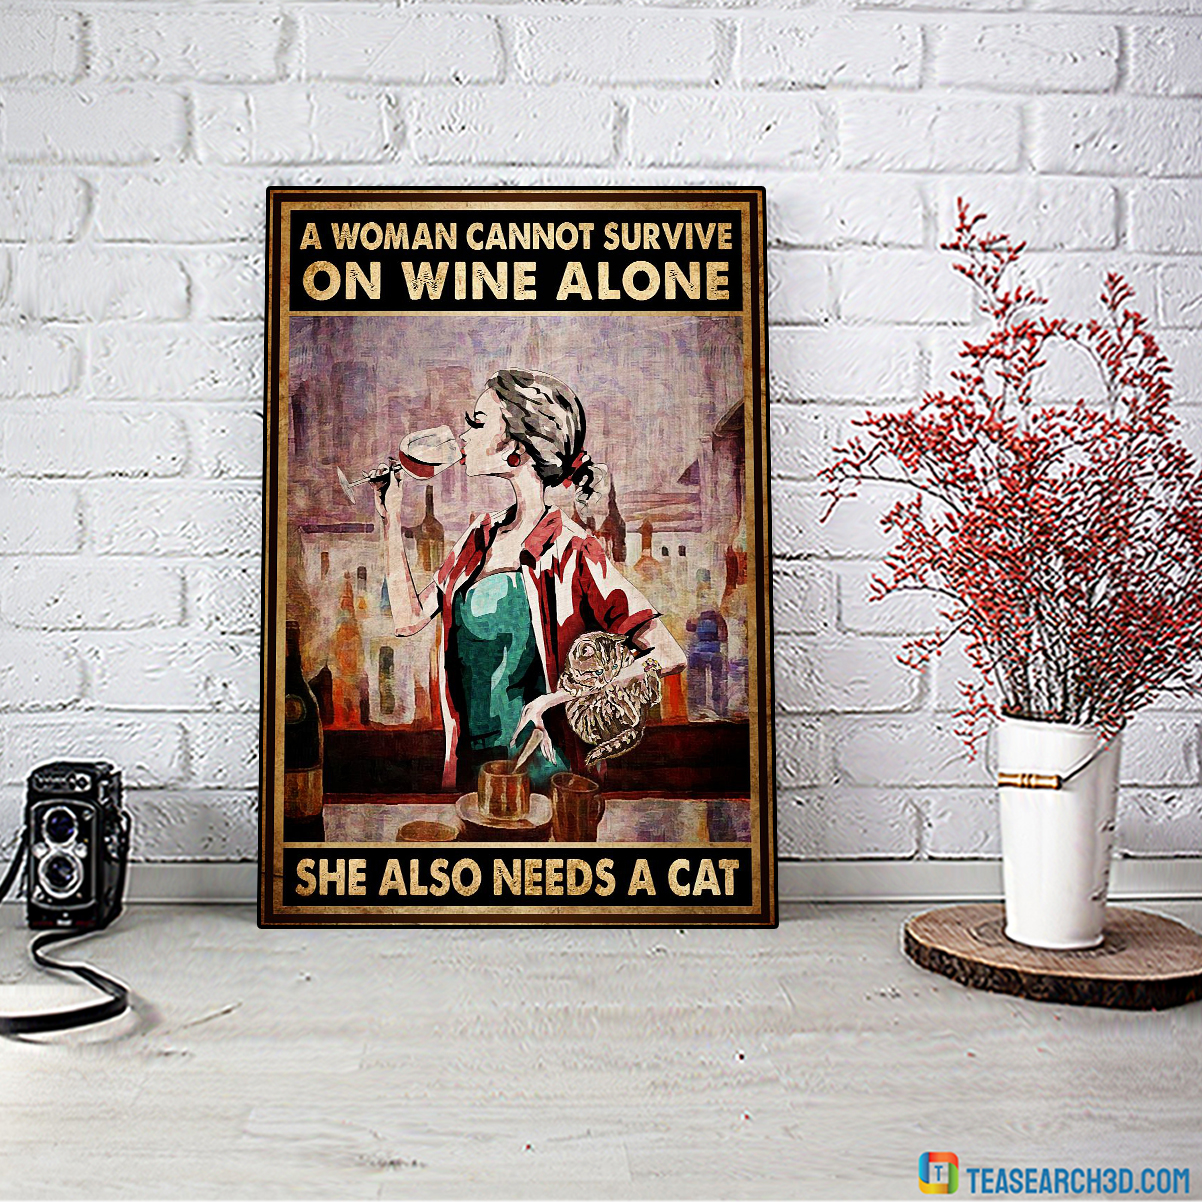 A woman cannot survive on wine alone she also needs a cat poster A4